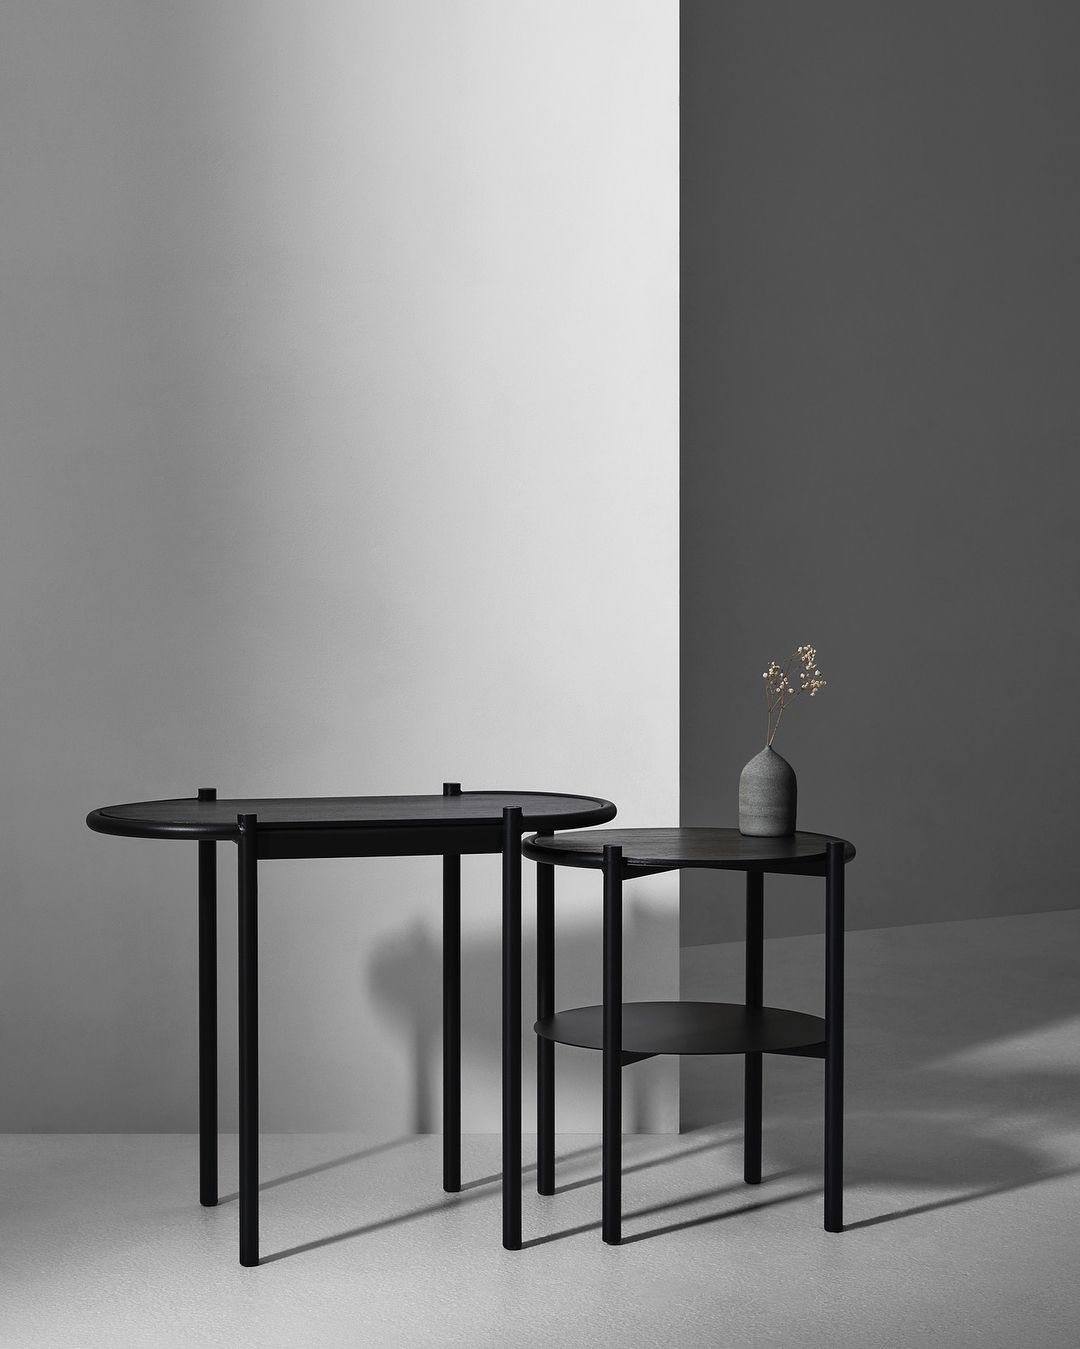 337 7k Followers 2 633 Following 2 142 Posts See Instagram Photos And Videos From The Local Project Thelocalproj Minimal Side Table Table Table Furniture [ 1349 x 1080 Pixel ]